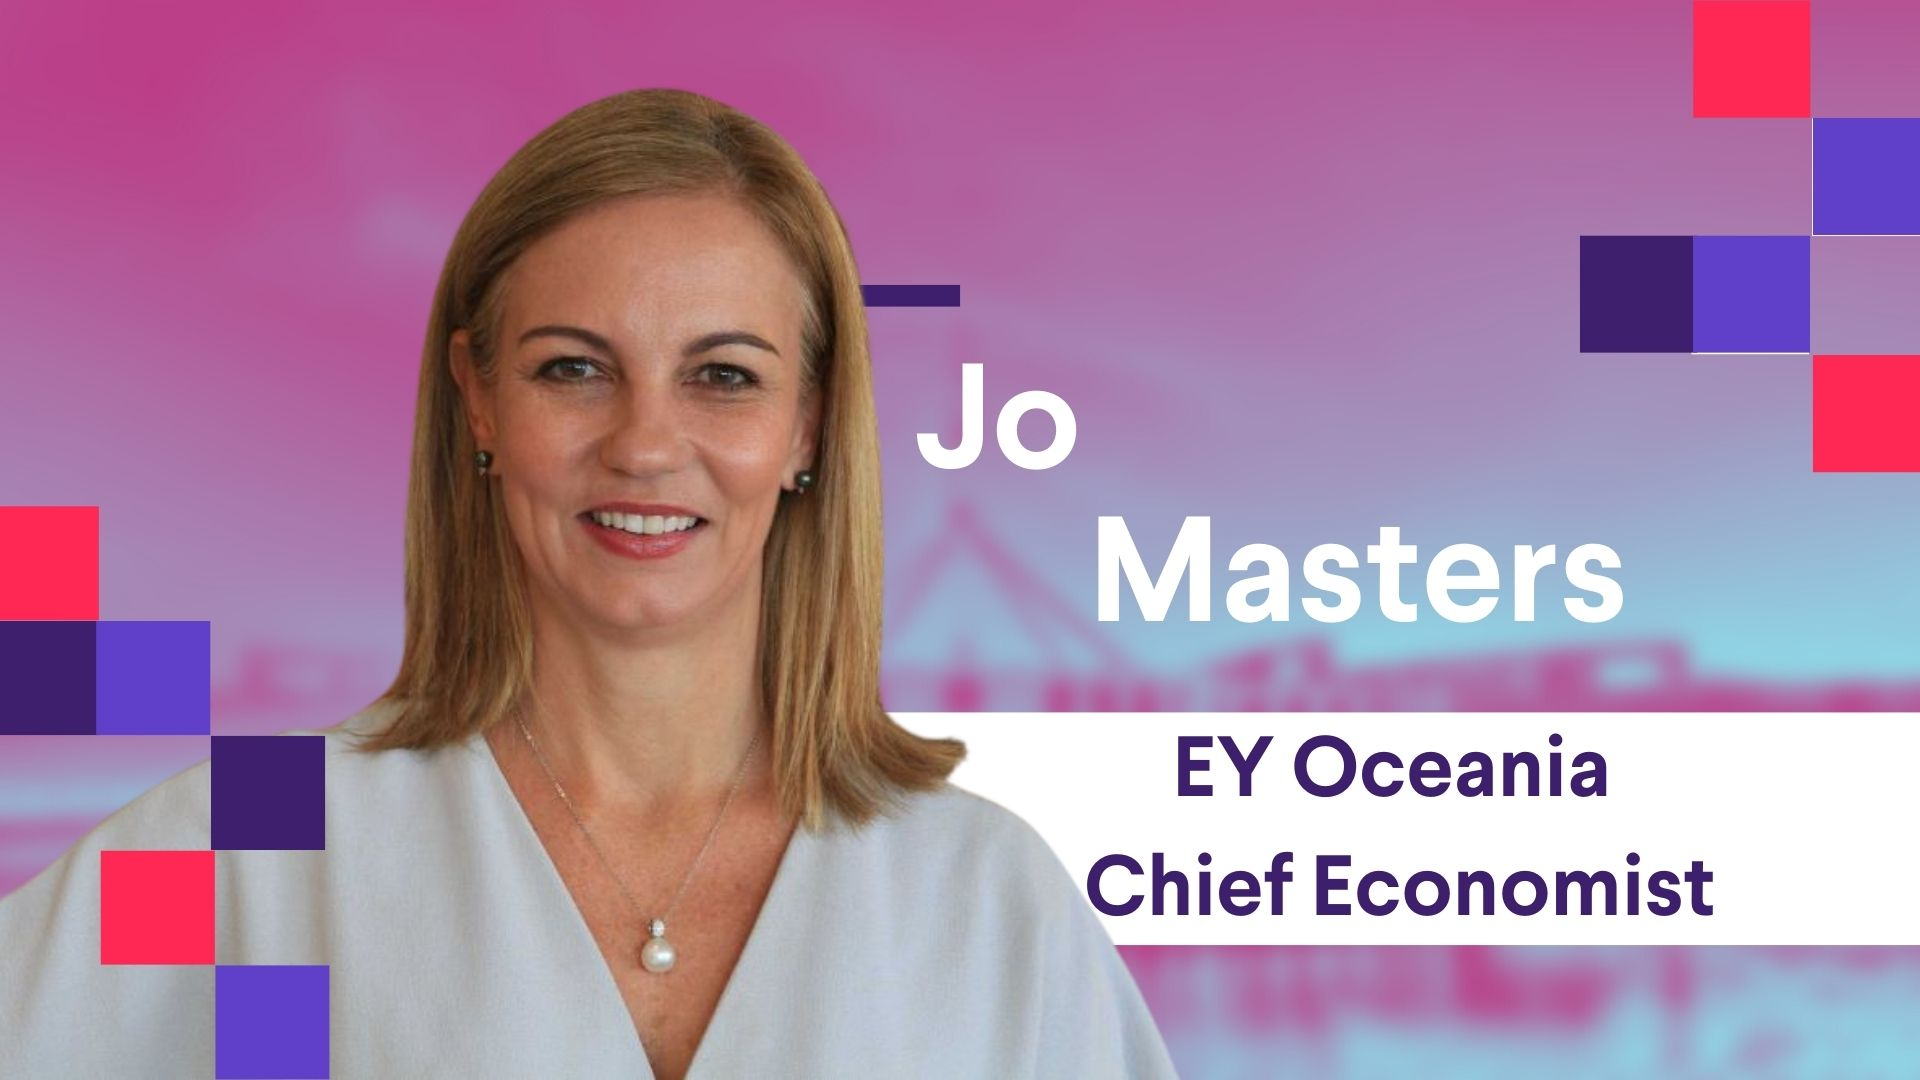 Jo Masters on iron ore, house prices and what it means for Budget 2021